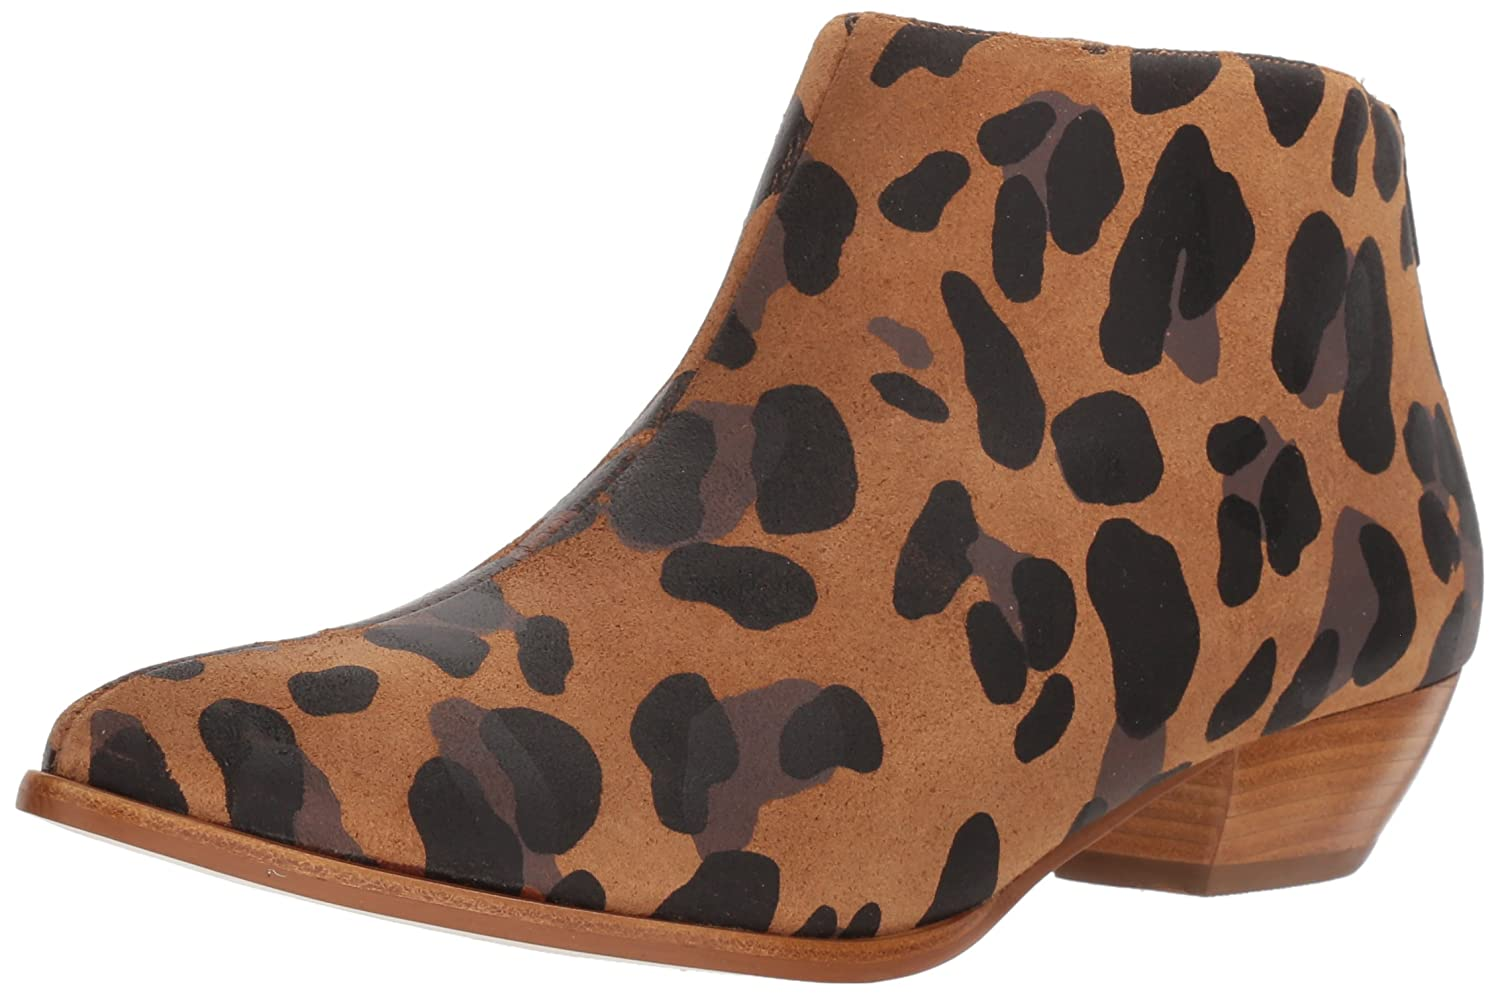 Matisse Women's Aida Ankle Boot B076HFYZGL 7 B(M) US|Leopard Suede